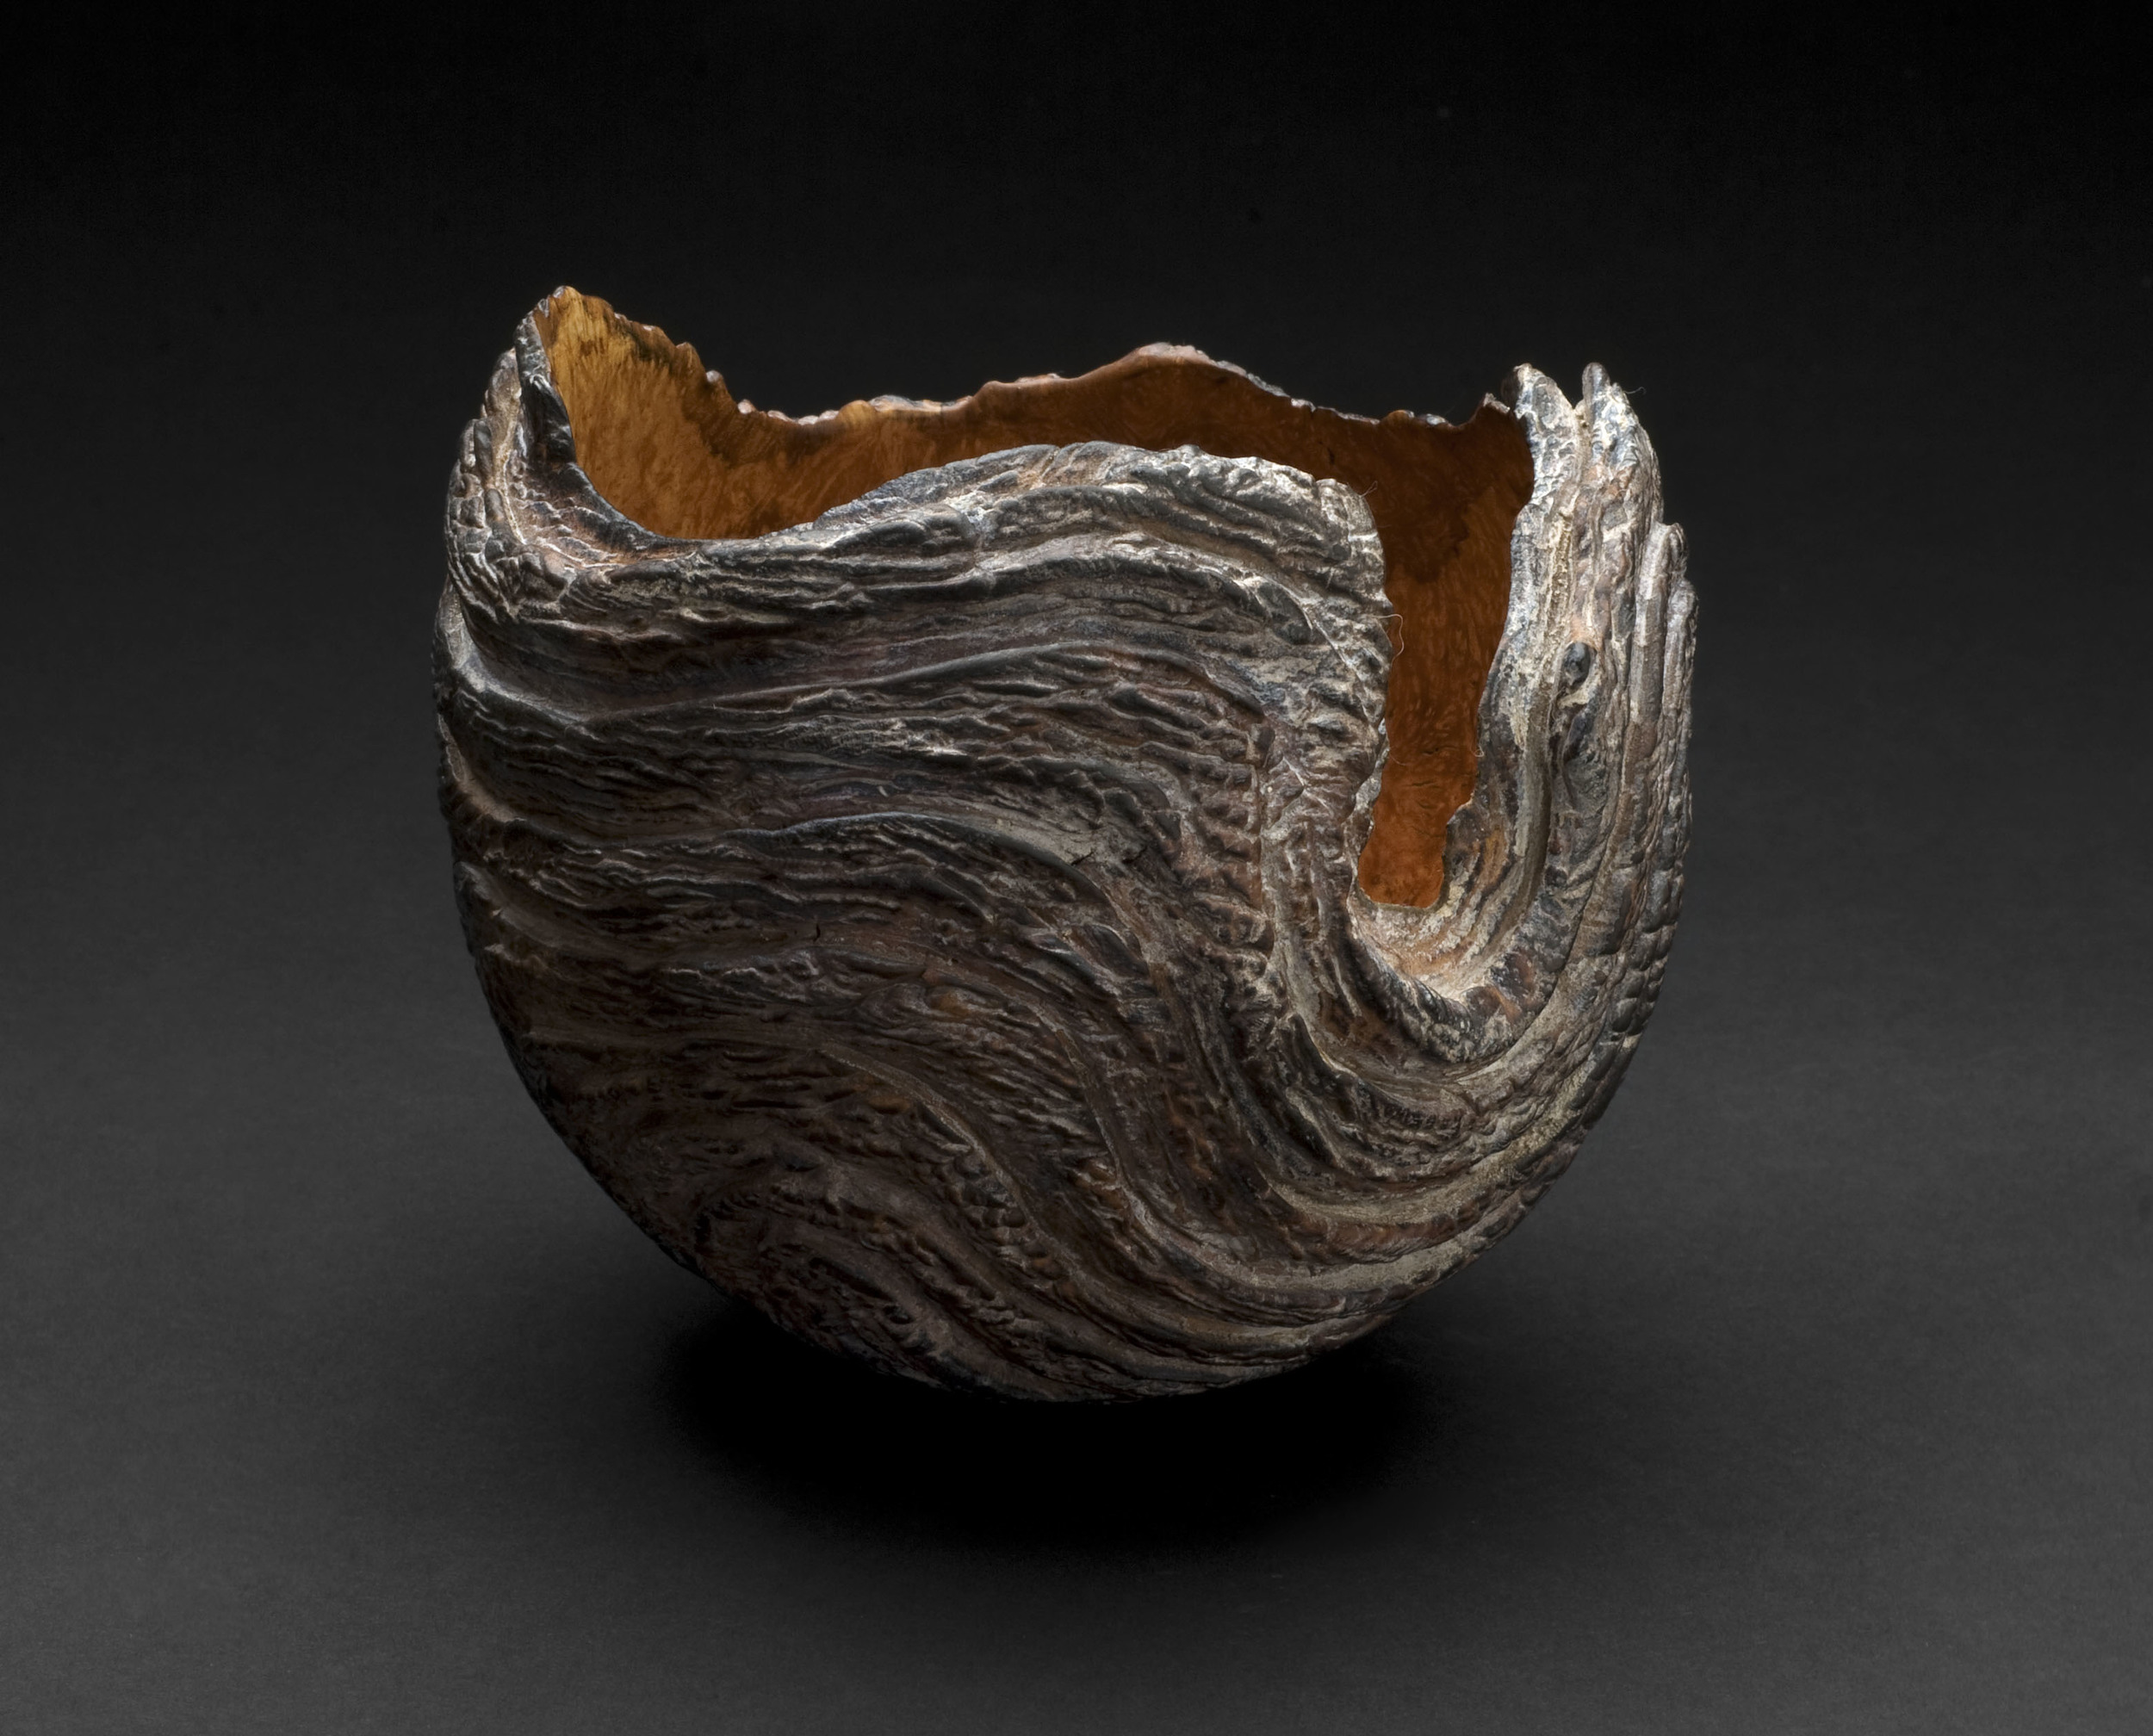 Christophe Nancey     Waved Bowl 2  , 2012  Heather root, with pewter inlay and some parts patinated with pigments and oil  4.33 x 5.51 inches / 11 x 14 cm / CNa 5